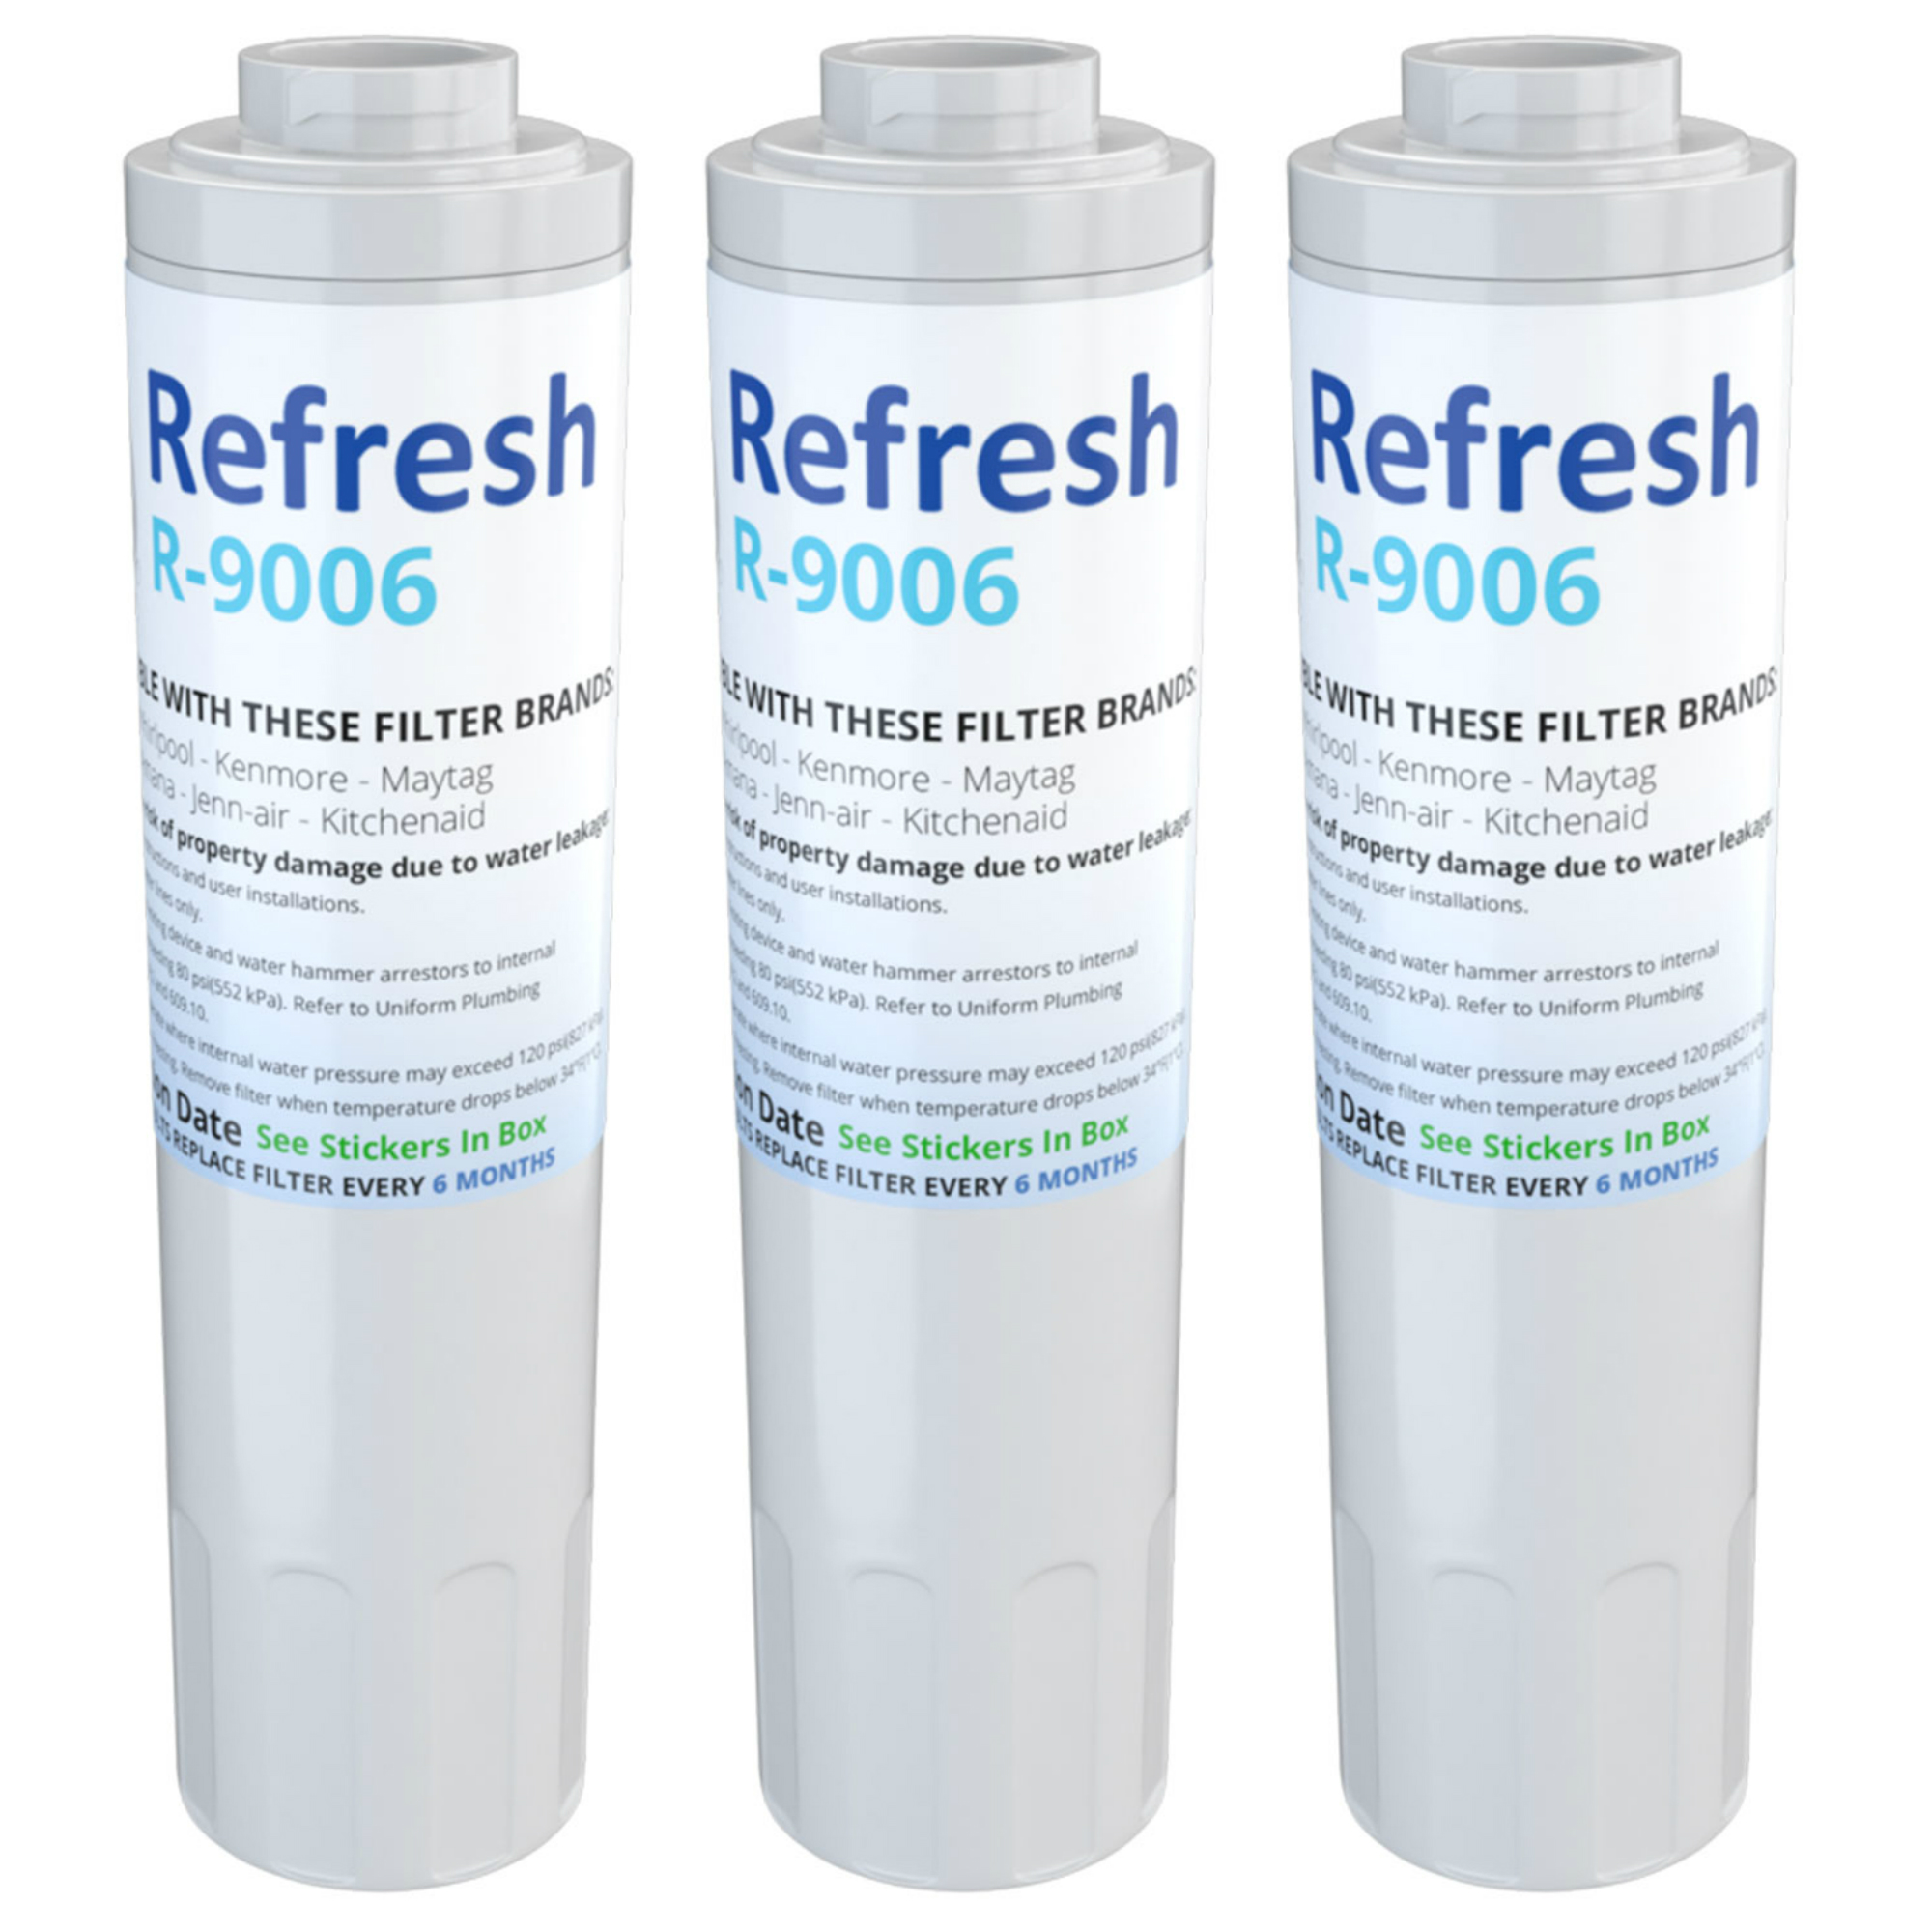 Refresh Replacement for Maytag UKF8001 Whirlpool 4396395 Puriclean II Refrigerator Water Filter (3 Pack)